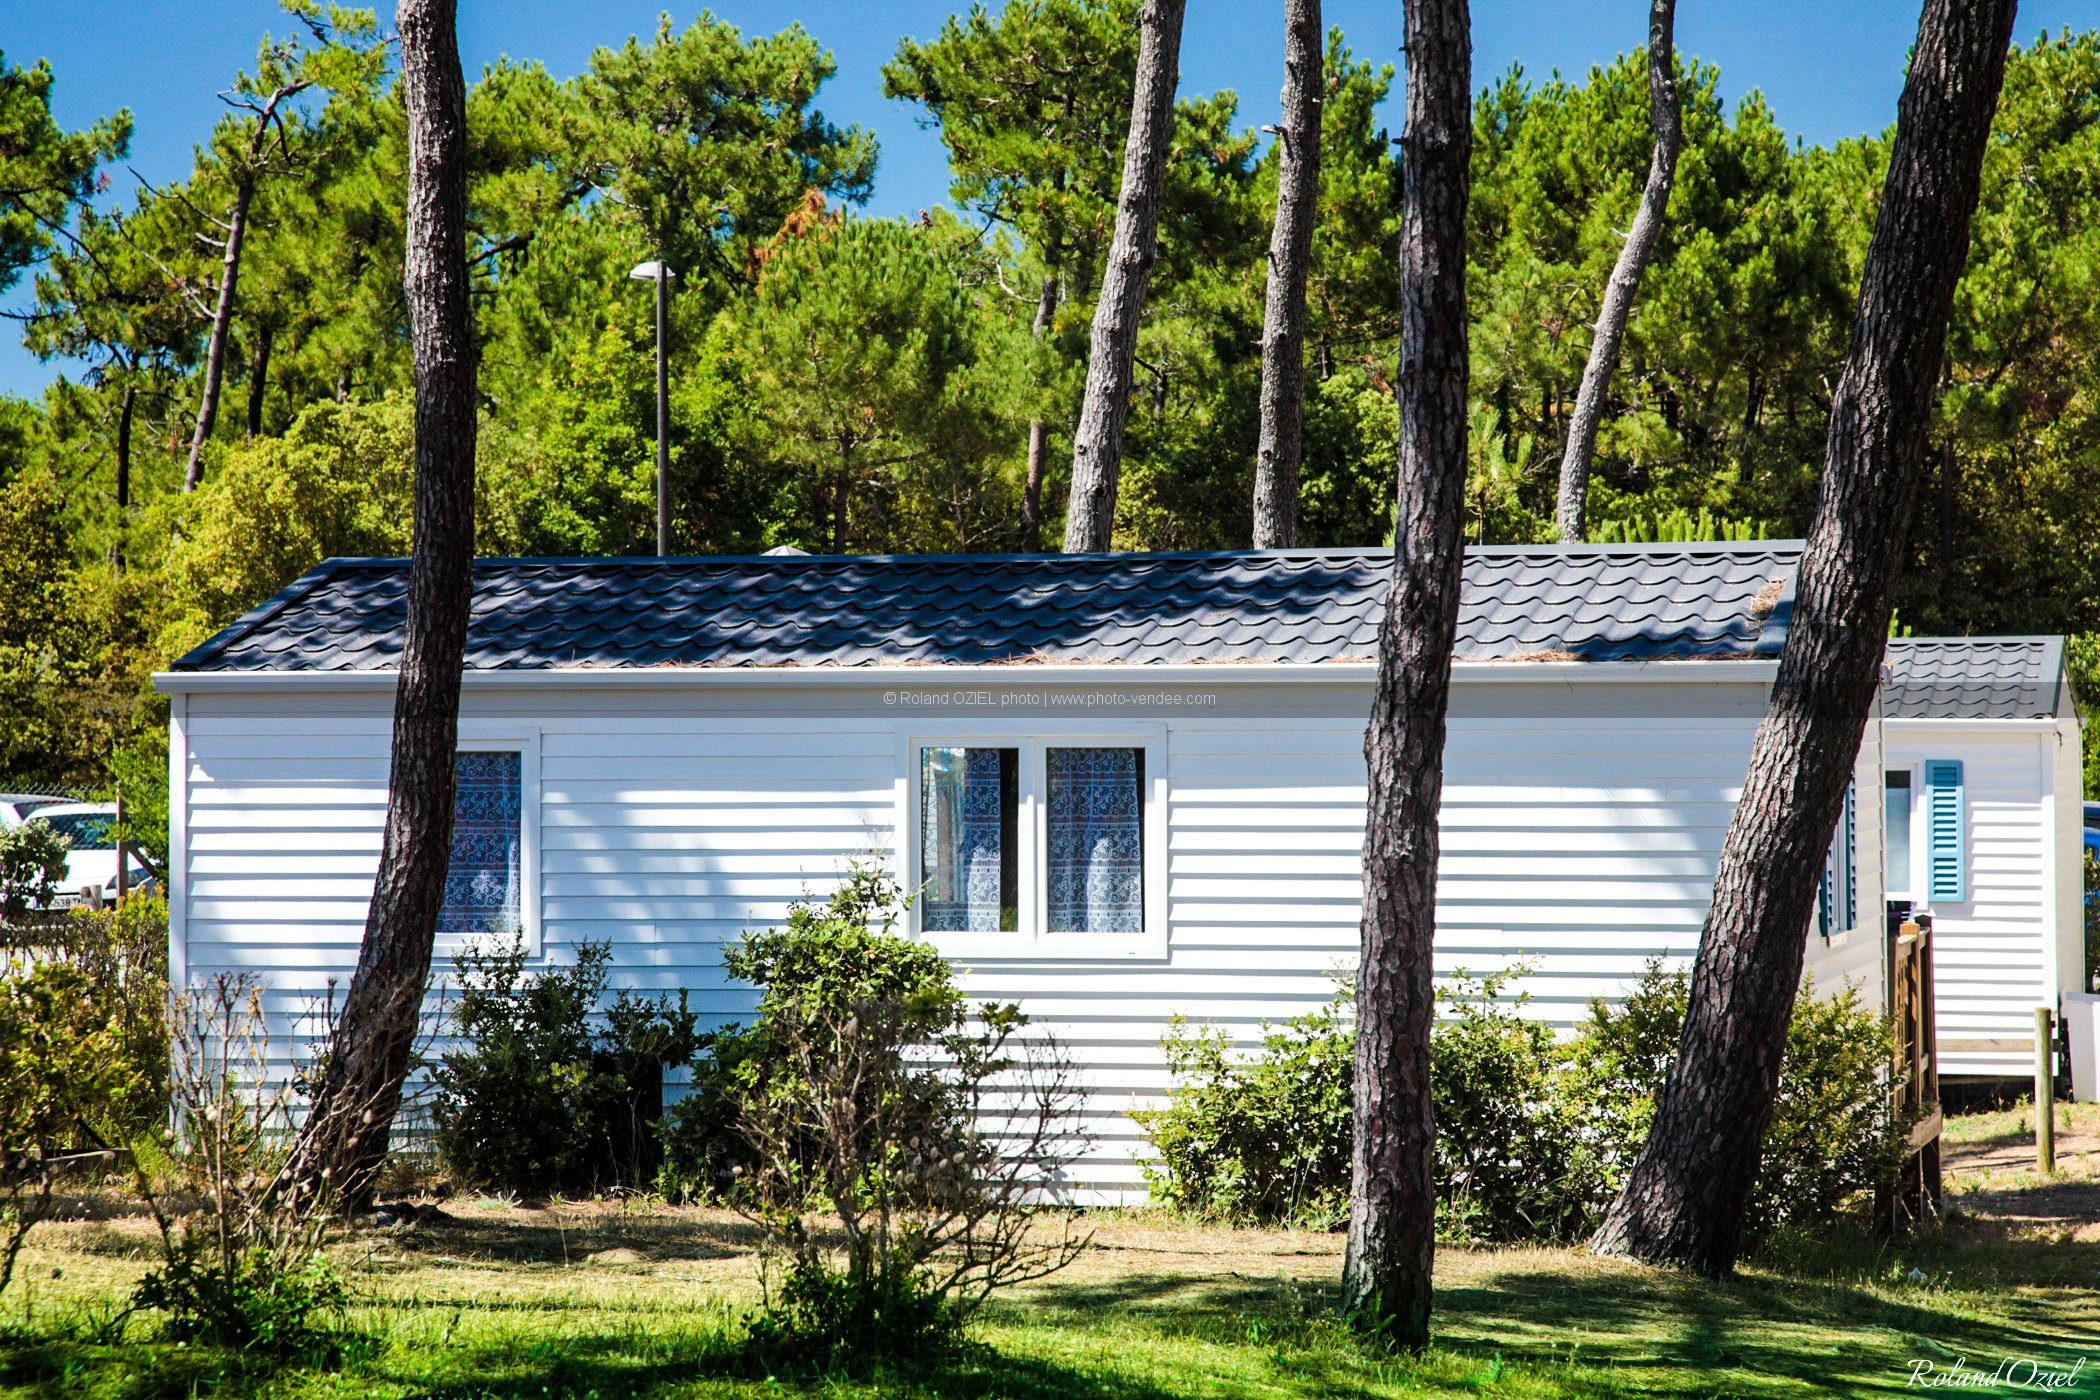 Photo camping saint hilaire de riez mobil-homes la plage de riez Vendée